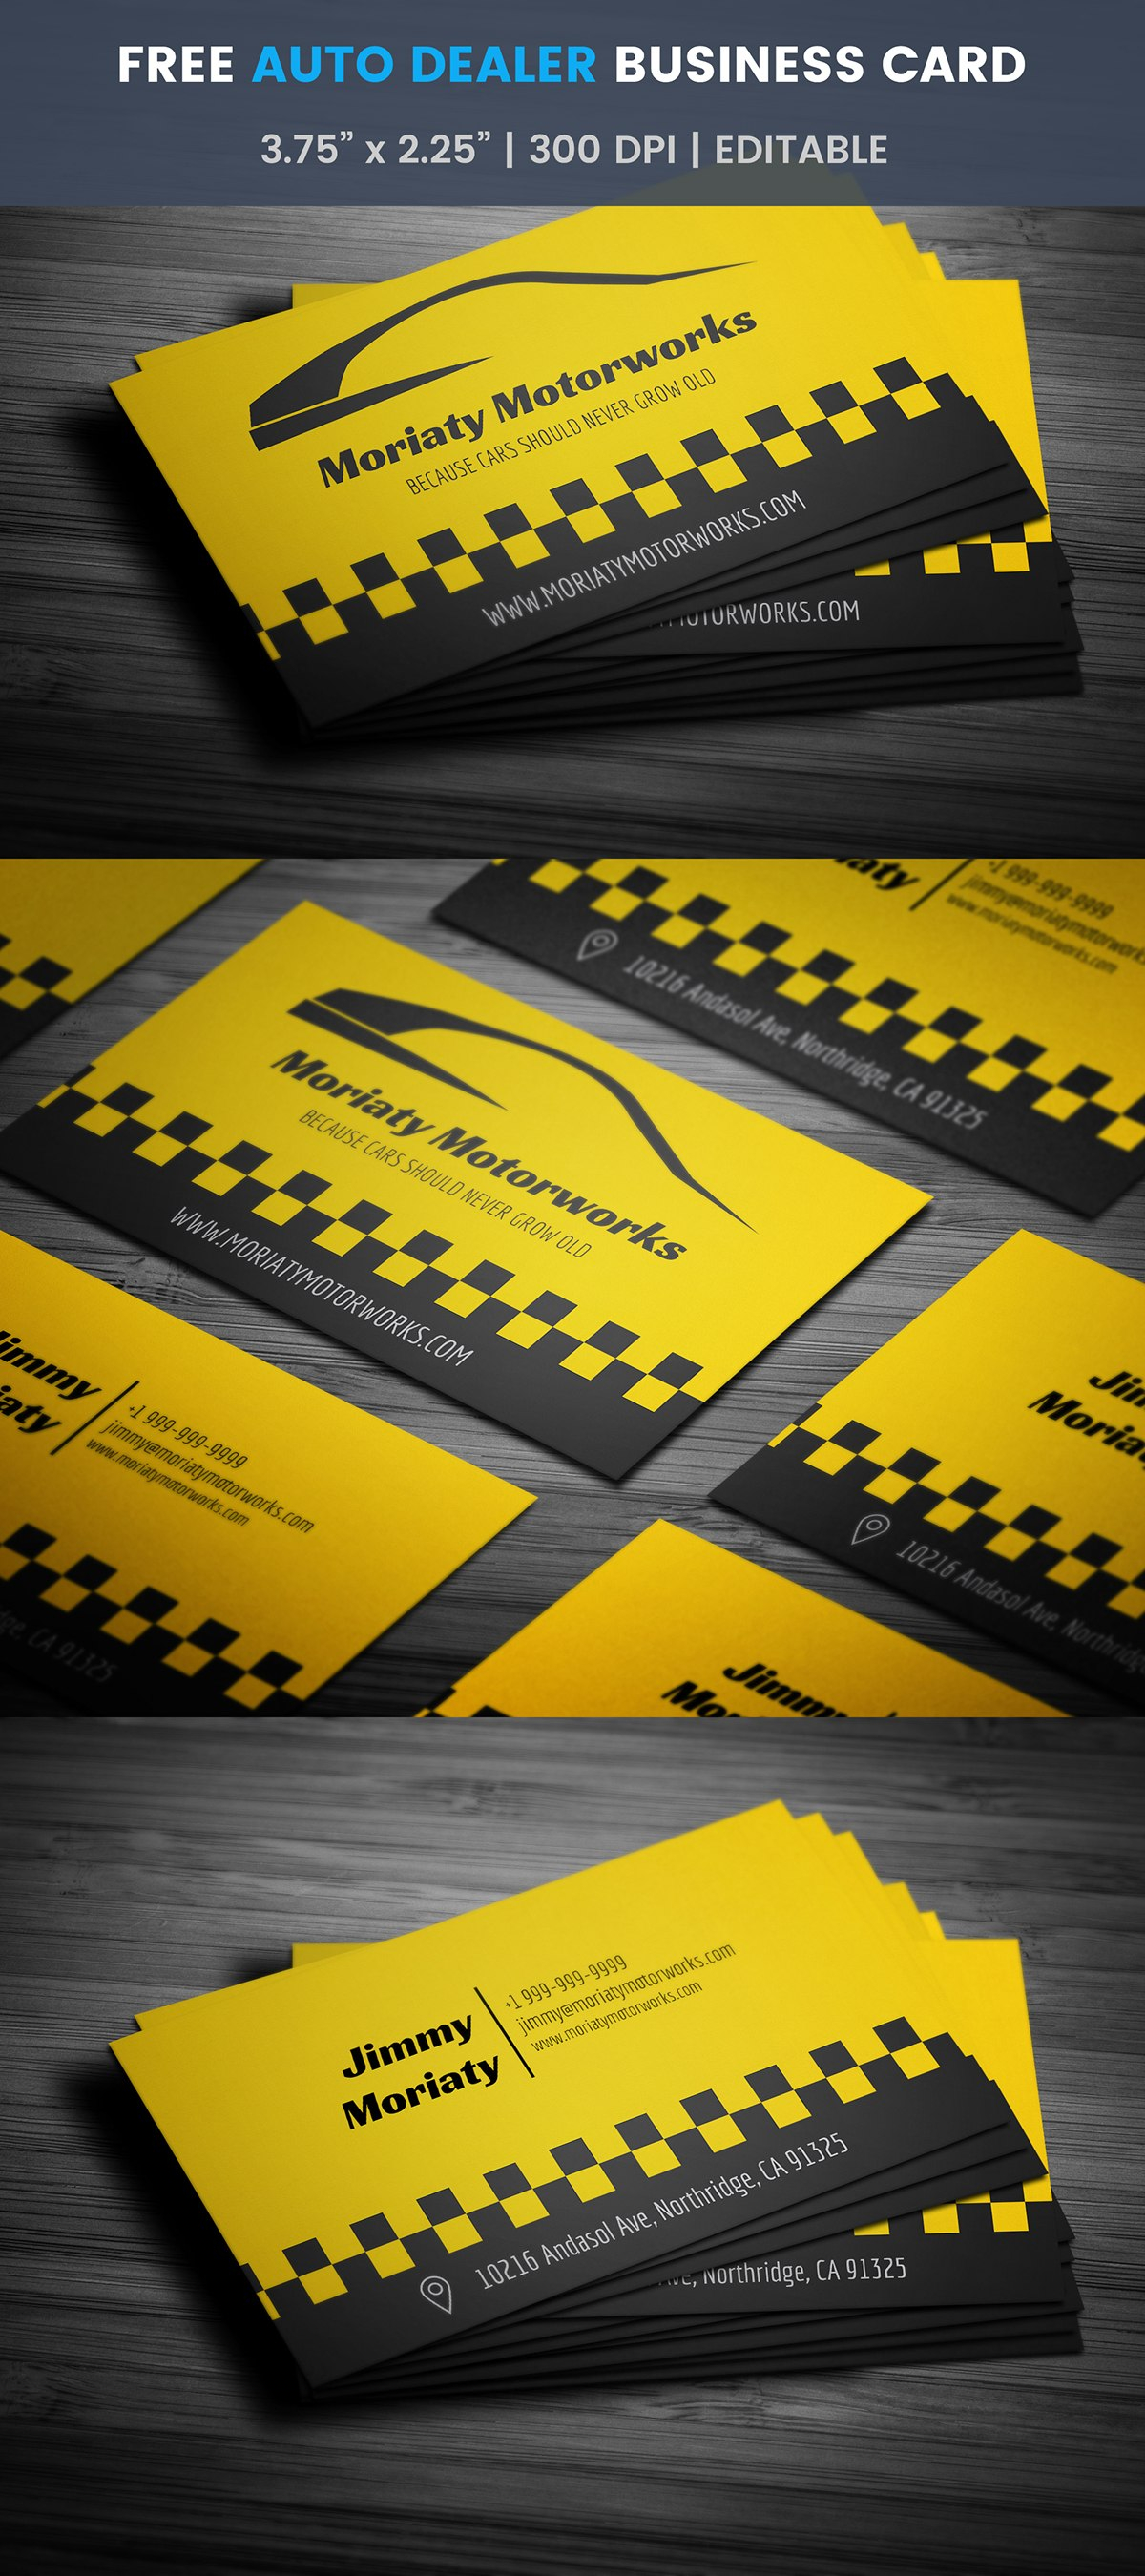 Free Automotive Business Card Template On Student Show For Automotive Business Card Templates